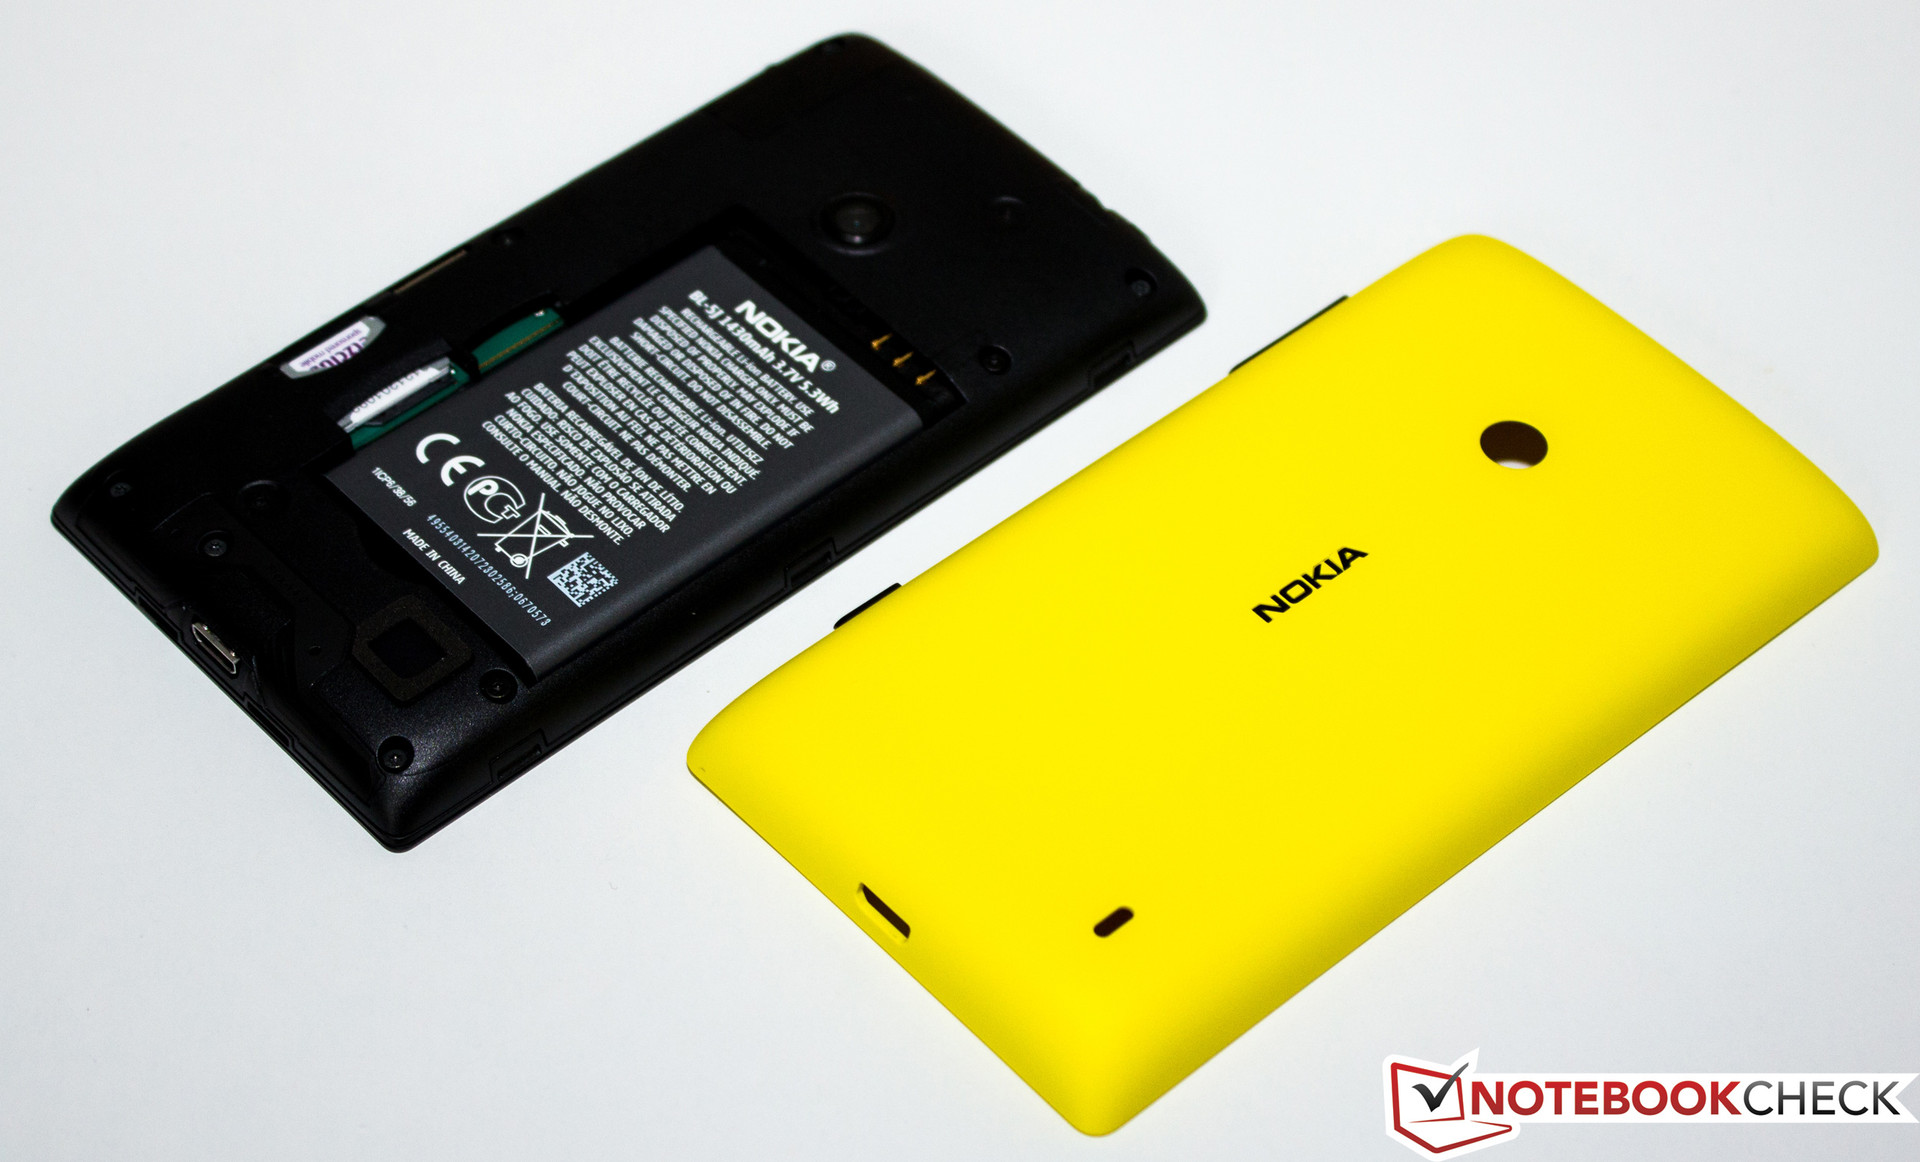 Review Nokia Lumia 520 Smartphone Reviews Asha 105 8 Mb Cyan Changeable Back Cover In Various Colors